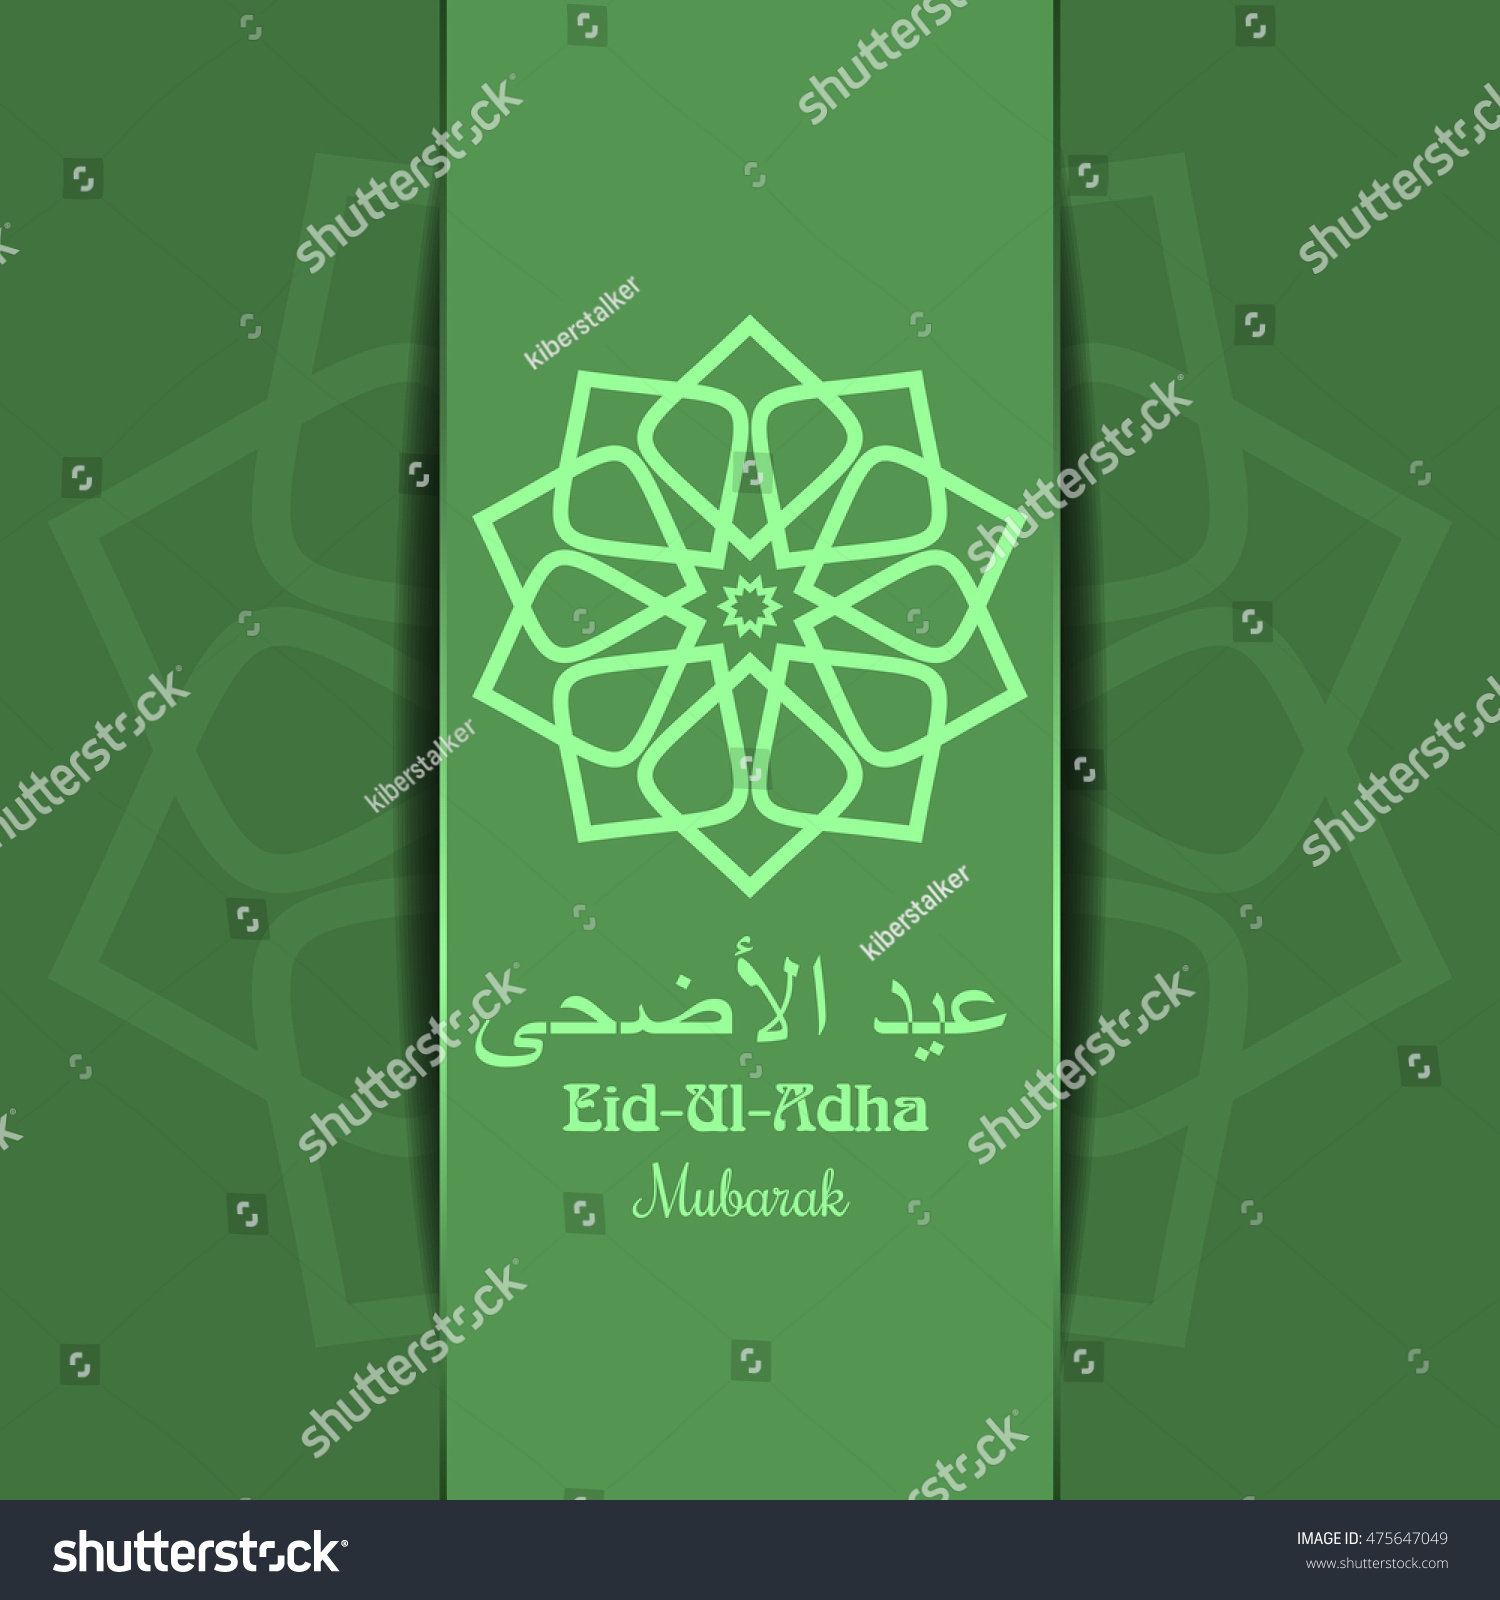 Islamic green background inscription arabic eid stock vector islamic green background with an inscription in arabic eid al adha kristyandbryce Image collections